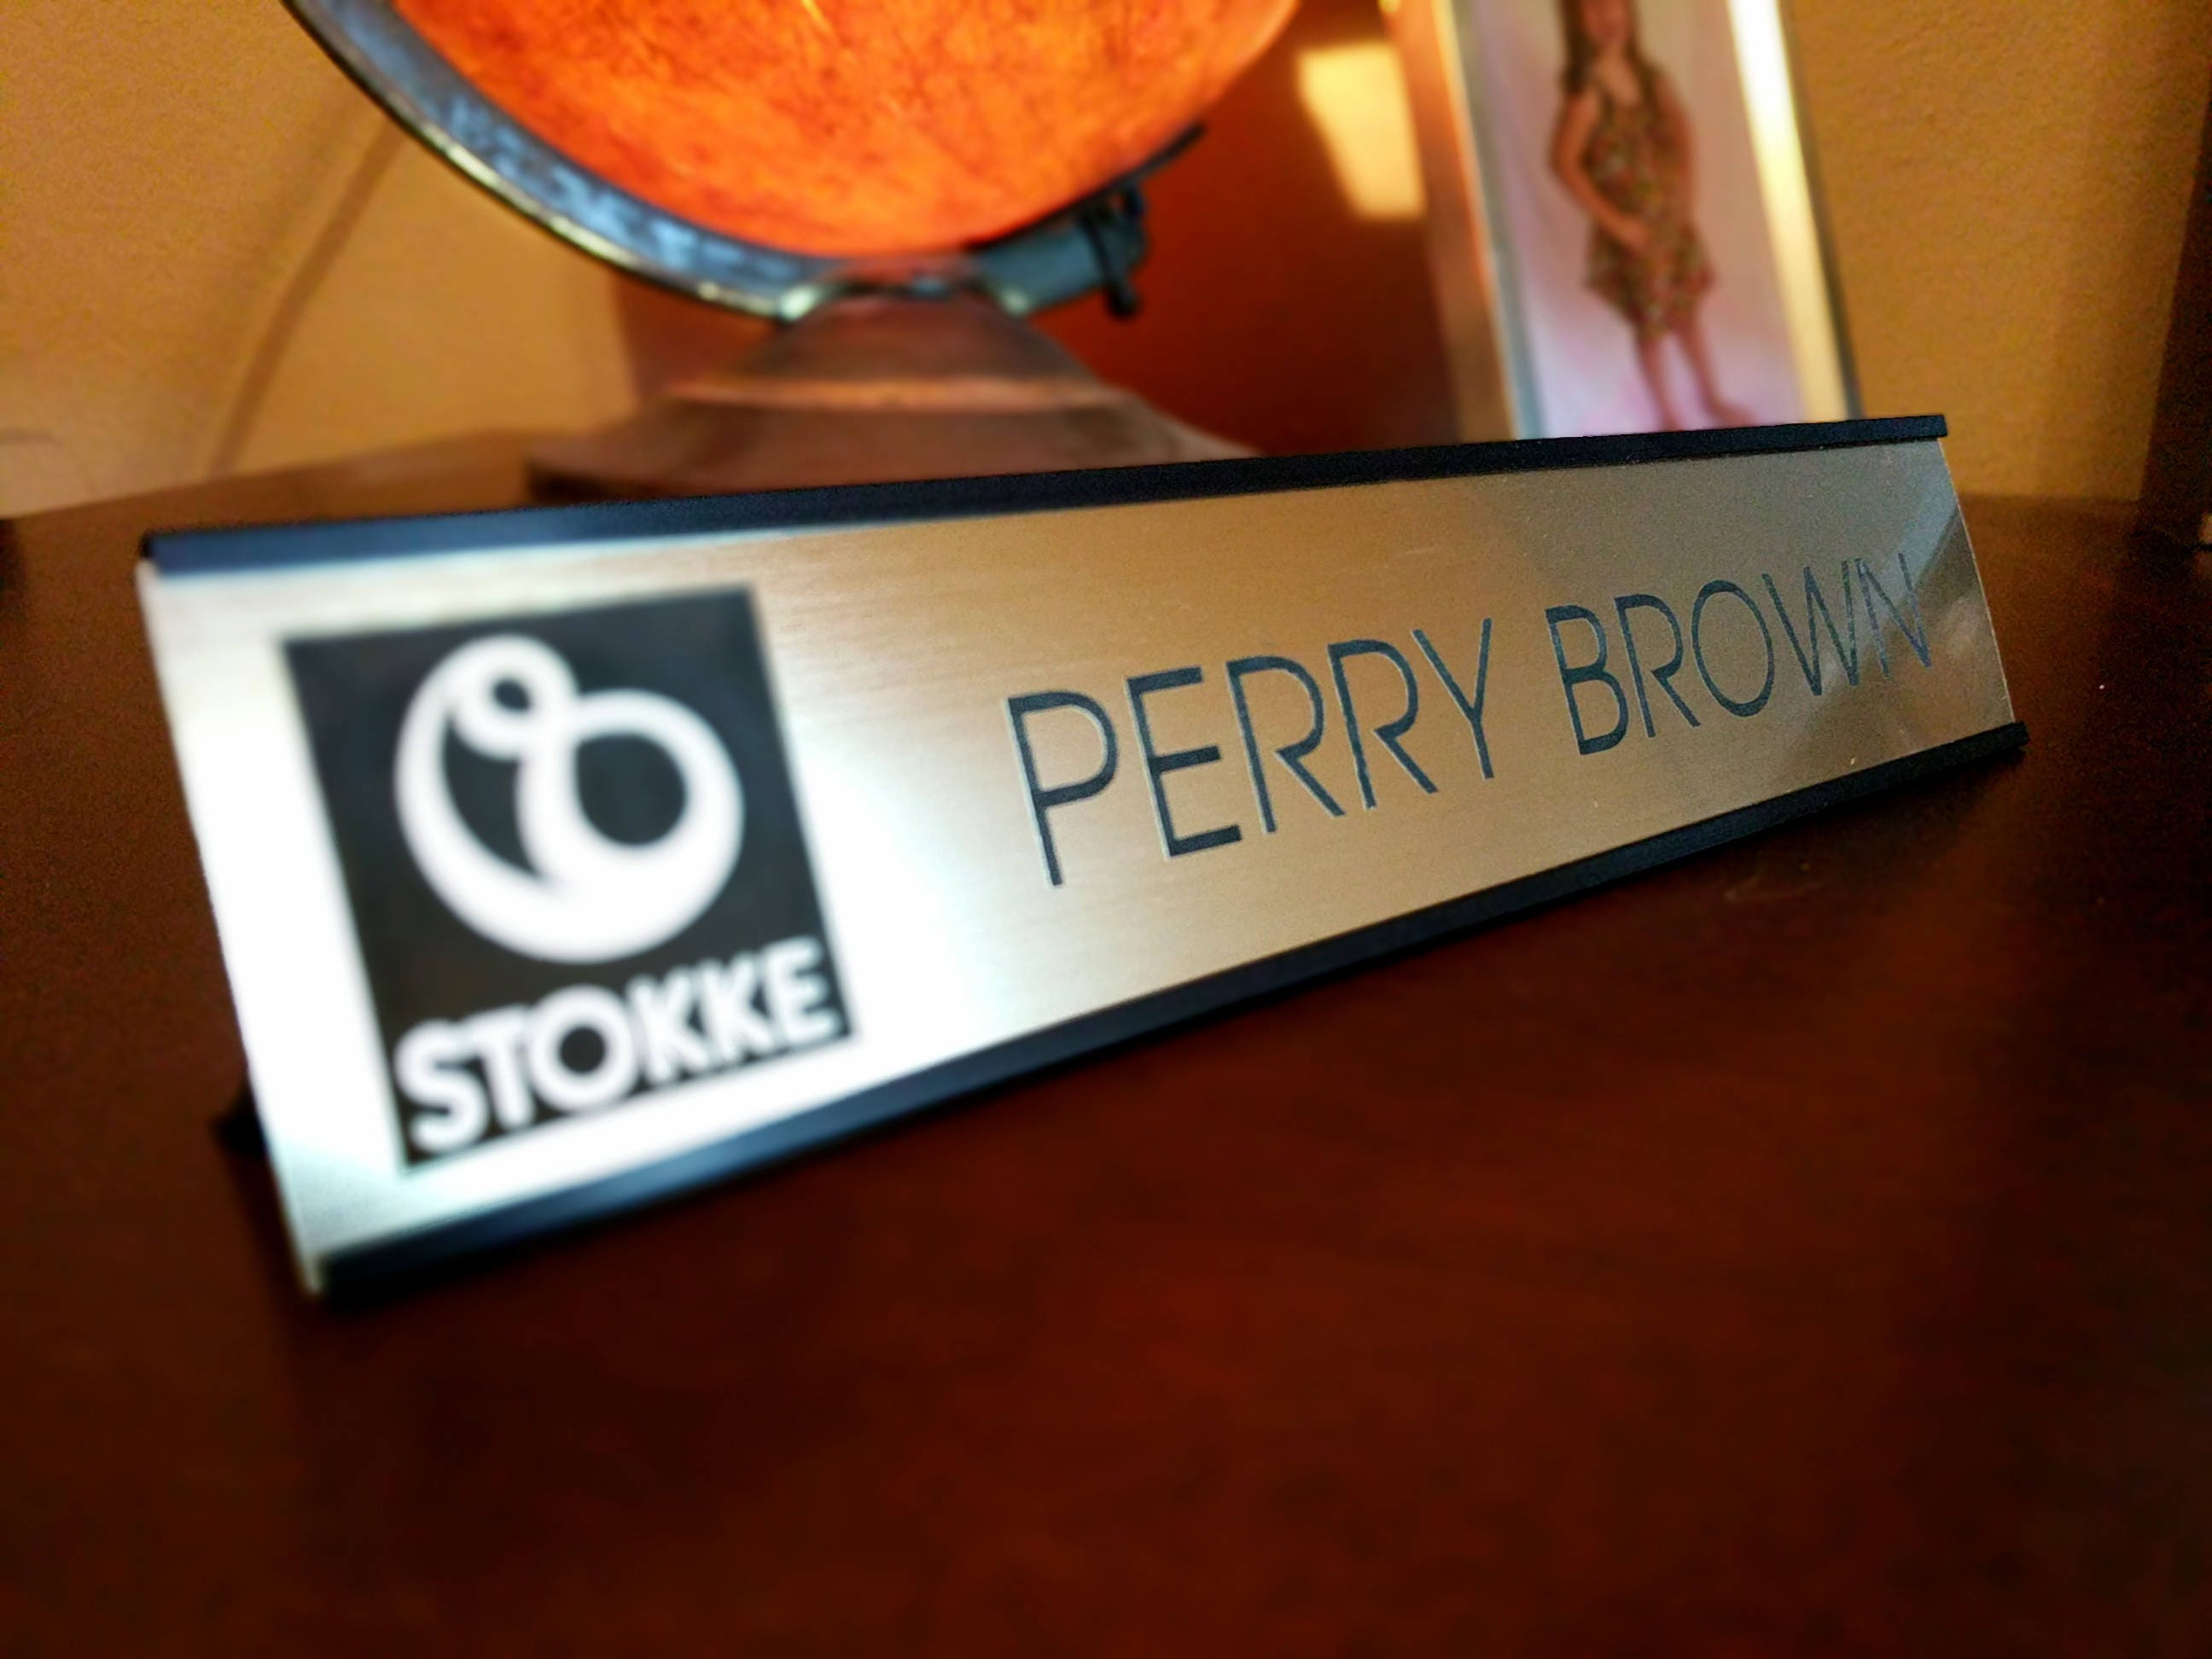 Desk Name Plate Home & Work Decor Personalized Name Tag